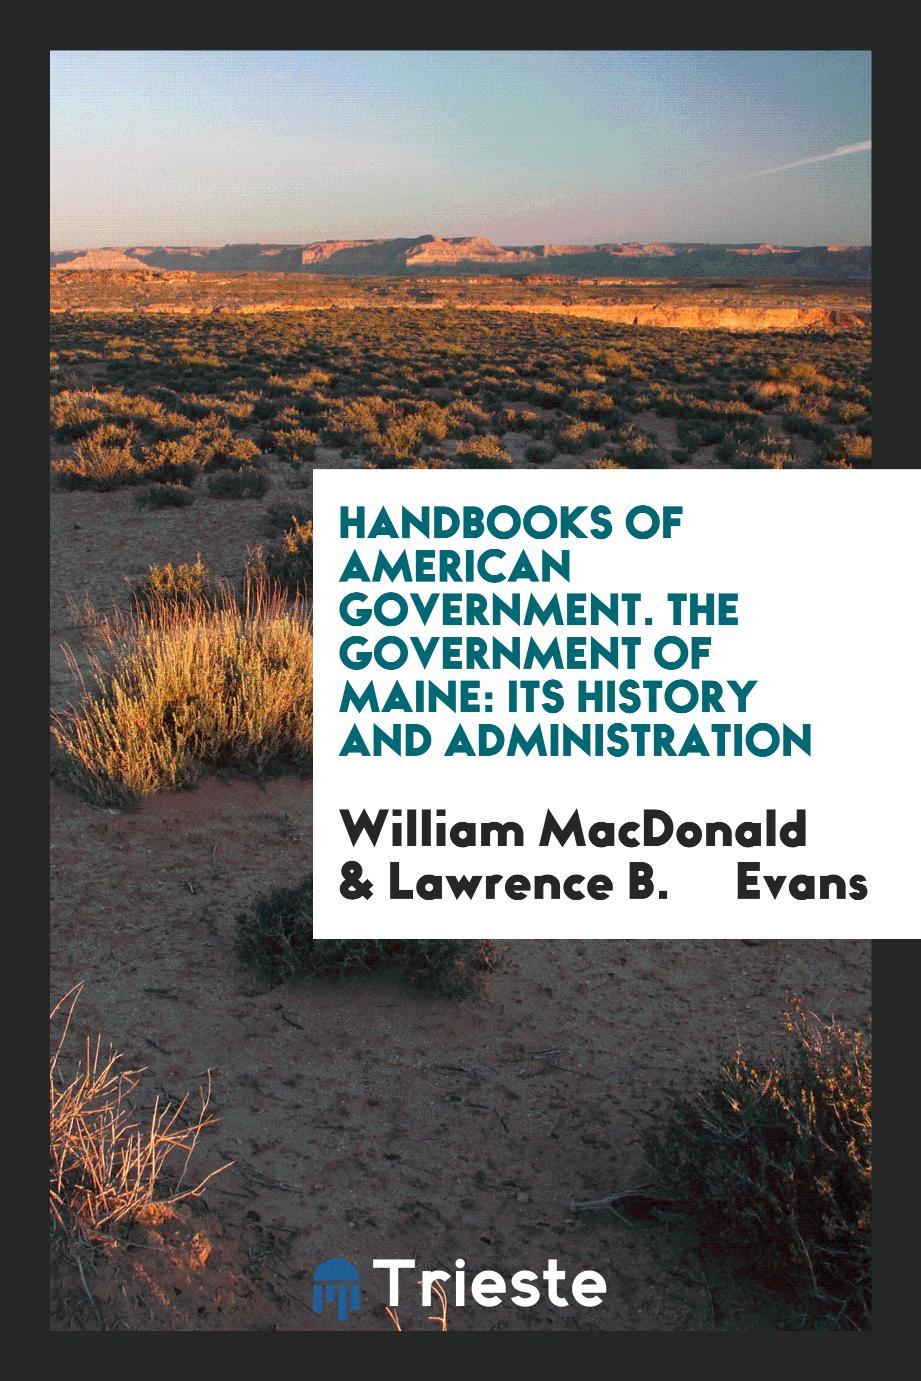 Handbooks of American Government. The Government of Maine: Its History and Administration